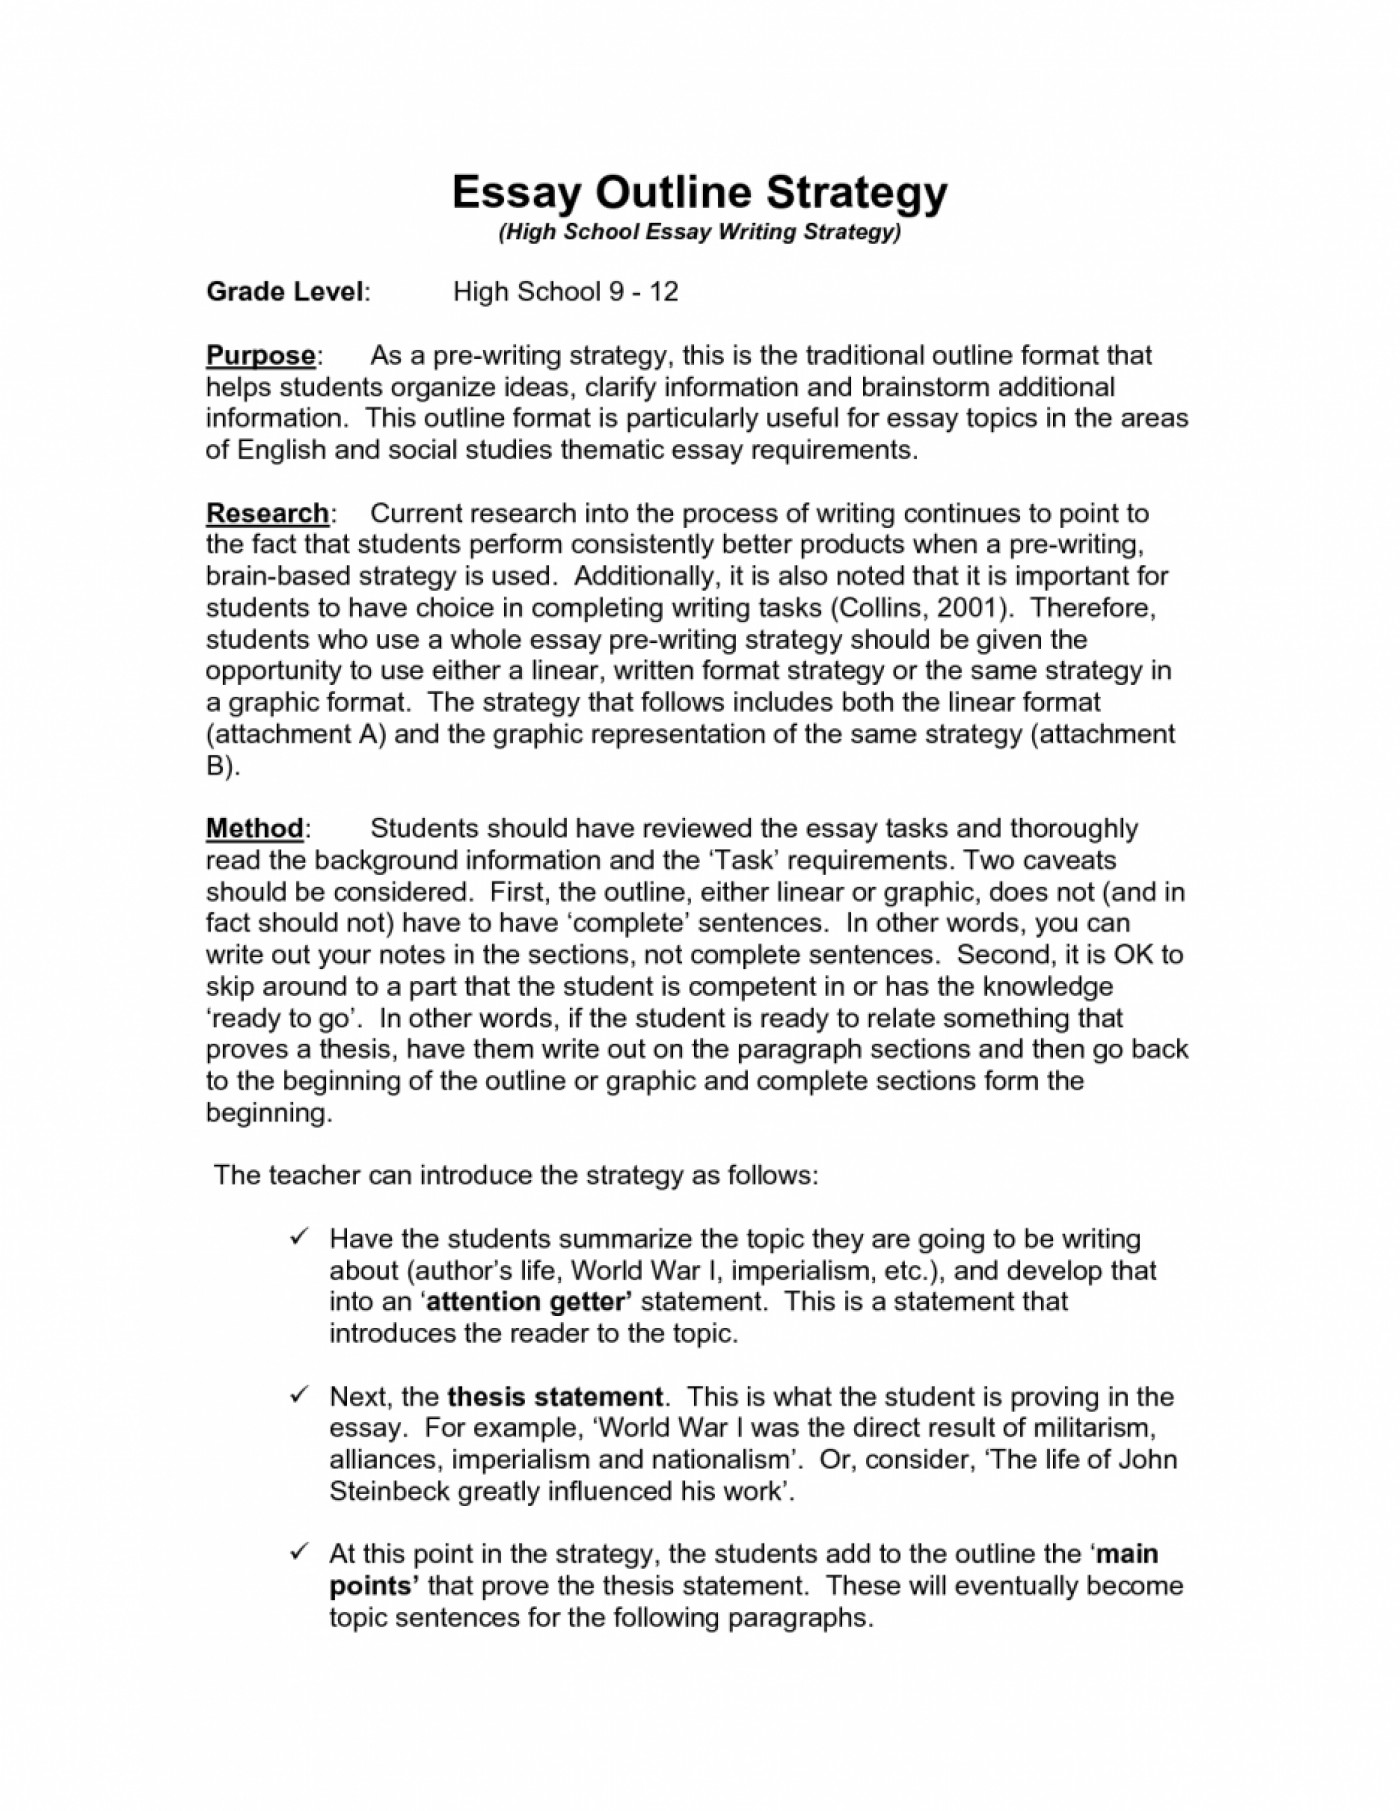 011 English Essay Outline Example Essays About Teaching As Foreign Language Class Global Learning Grammar Literature Magnificent Ap And Composition Liberty University 101 1 1400